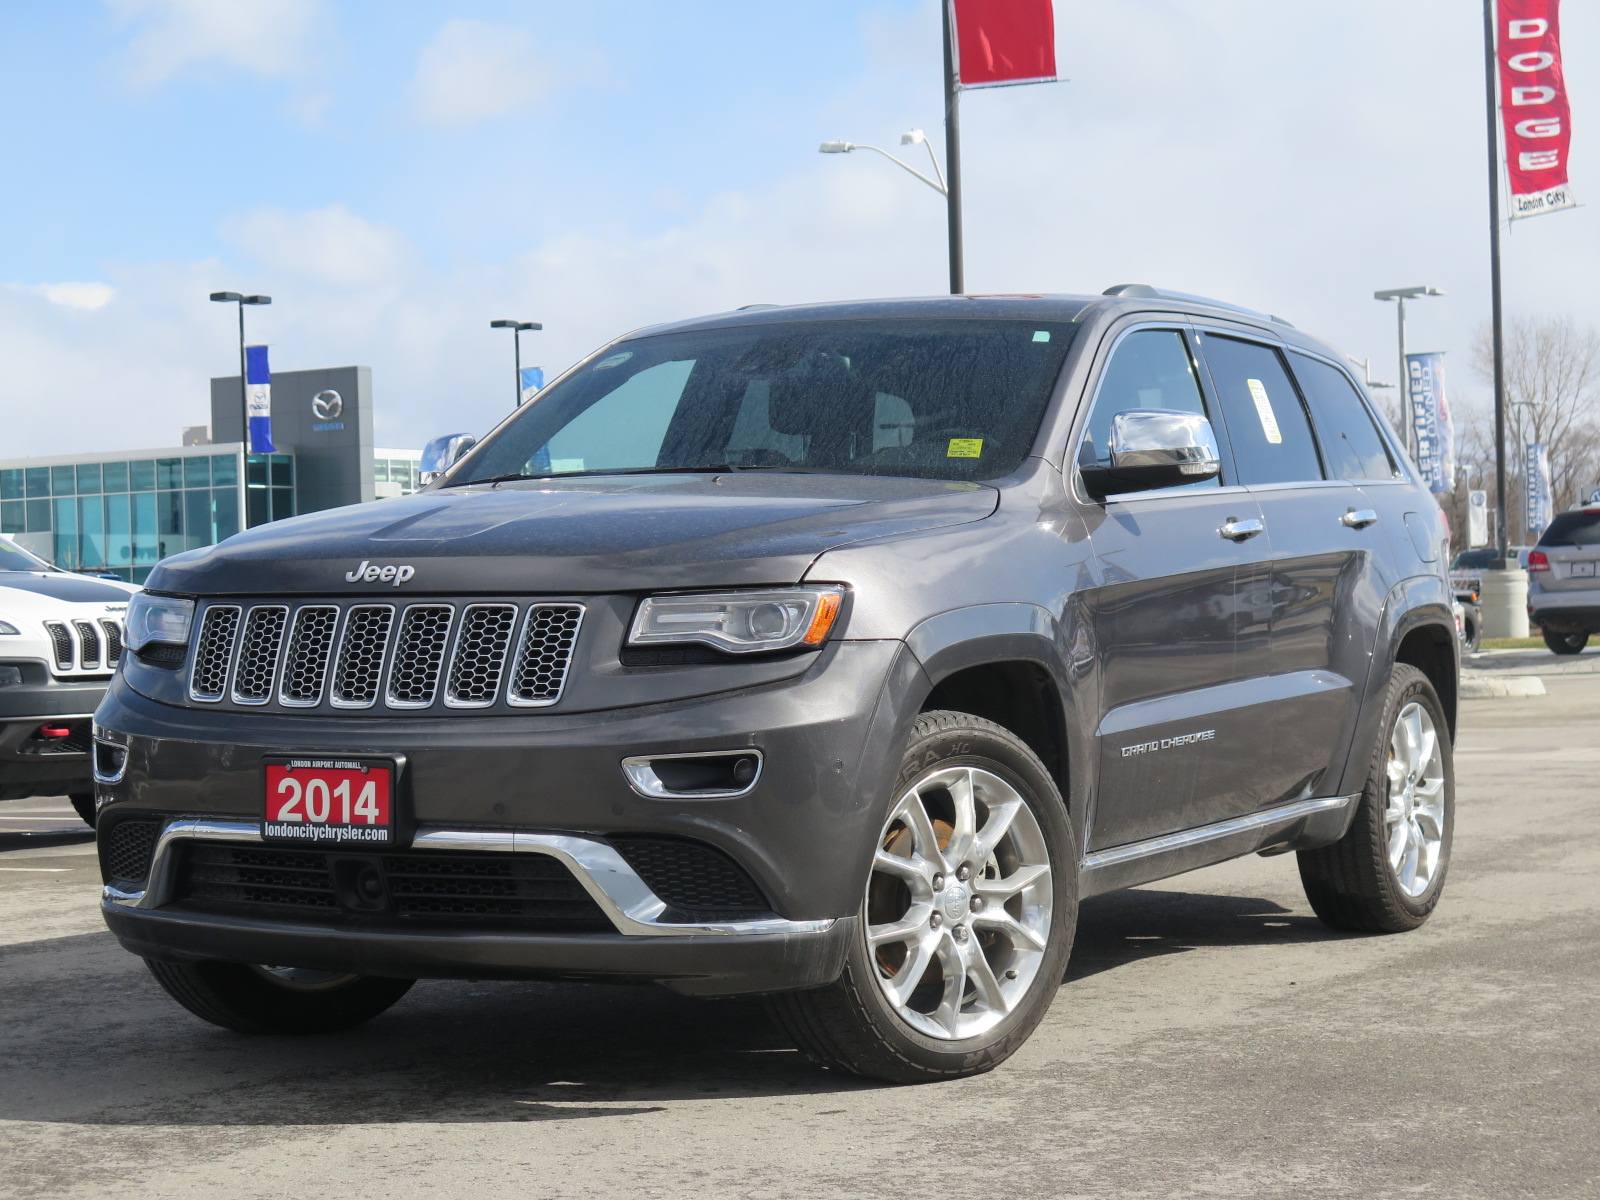 New 2014 Jeep Grand Cherokee, $38733